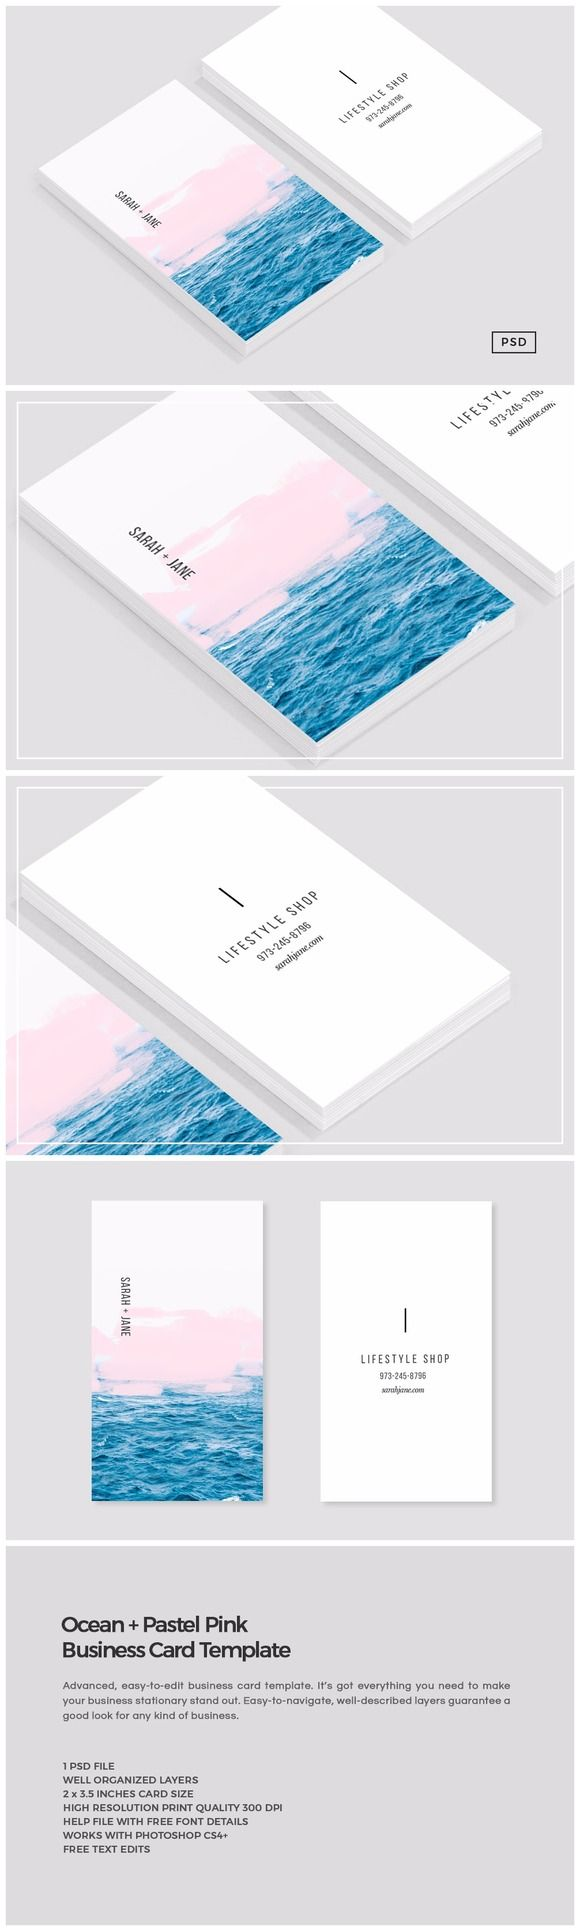 Ocean + Pink Business Card Template by Design Co. on @creativemarket